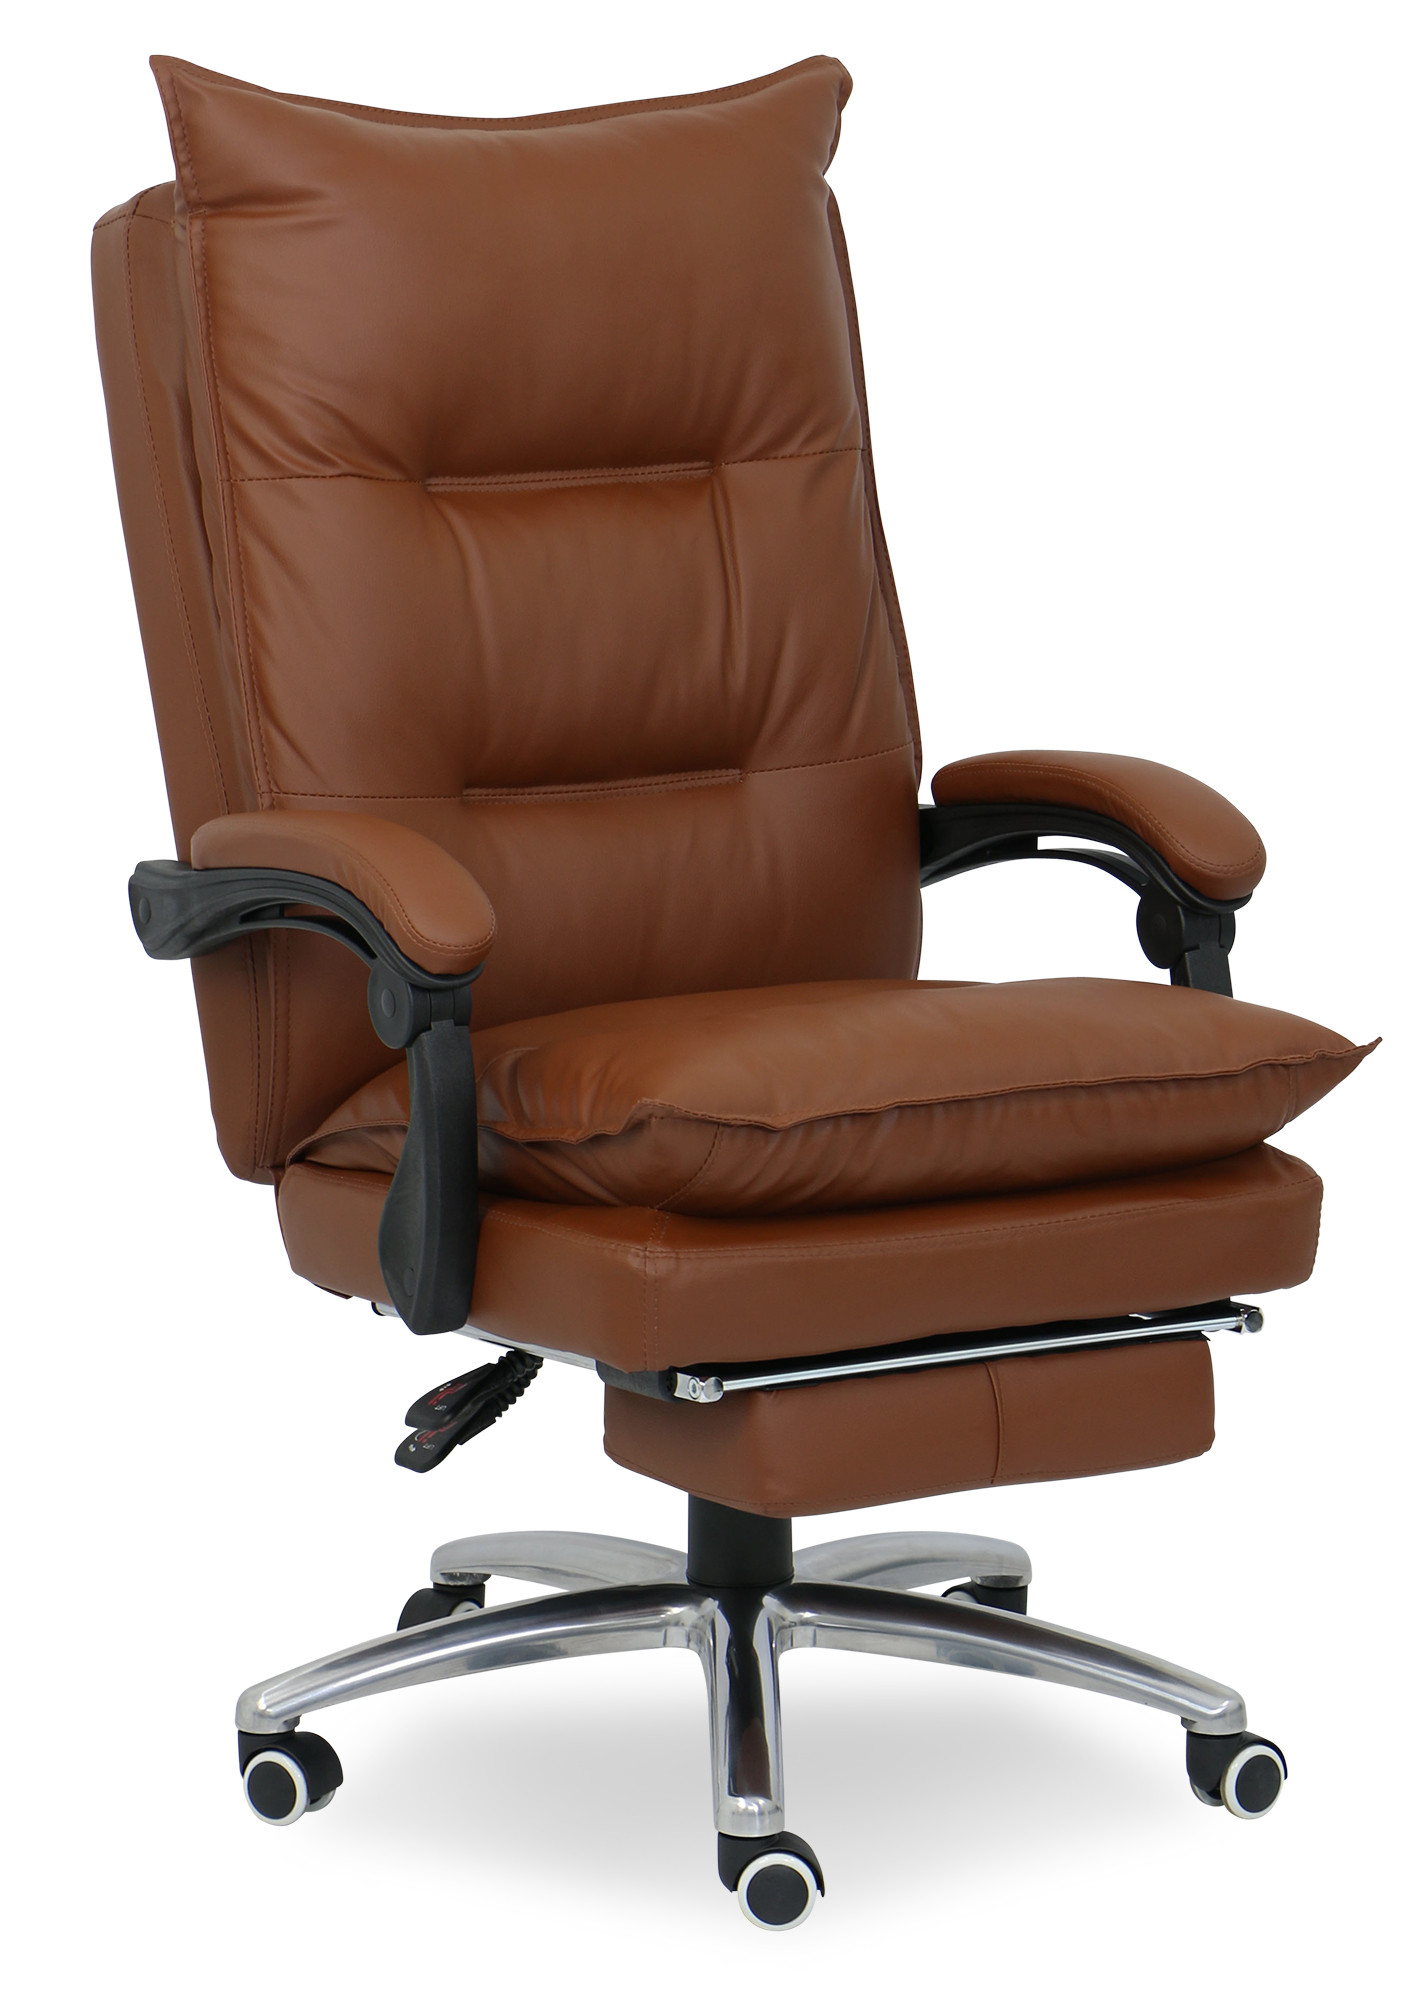 Executive Office Furniture: Deluxe Pu Executive Office Chair (Brown)